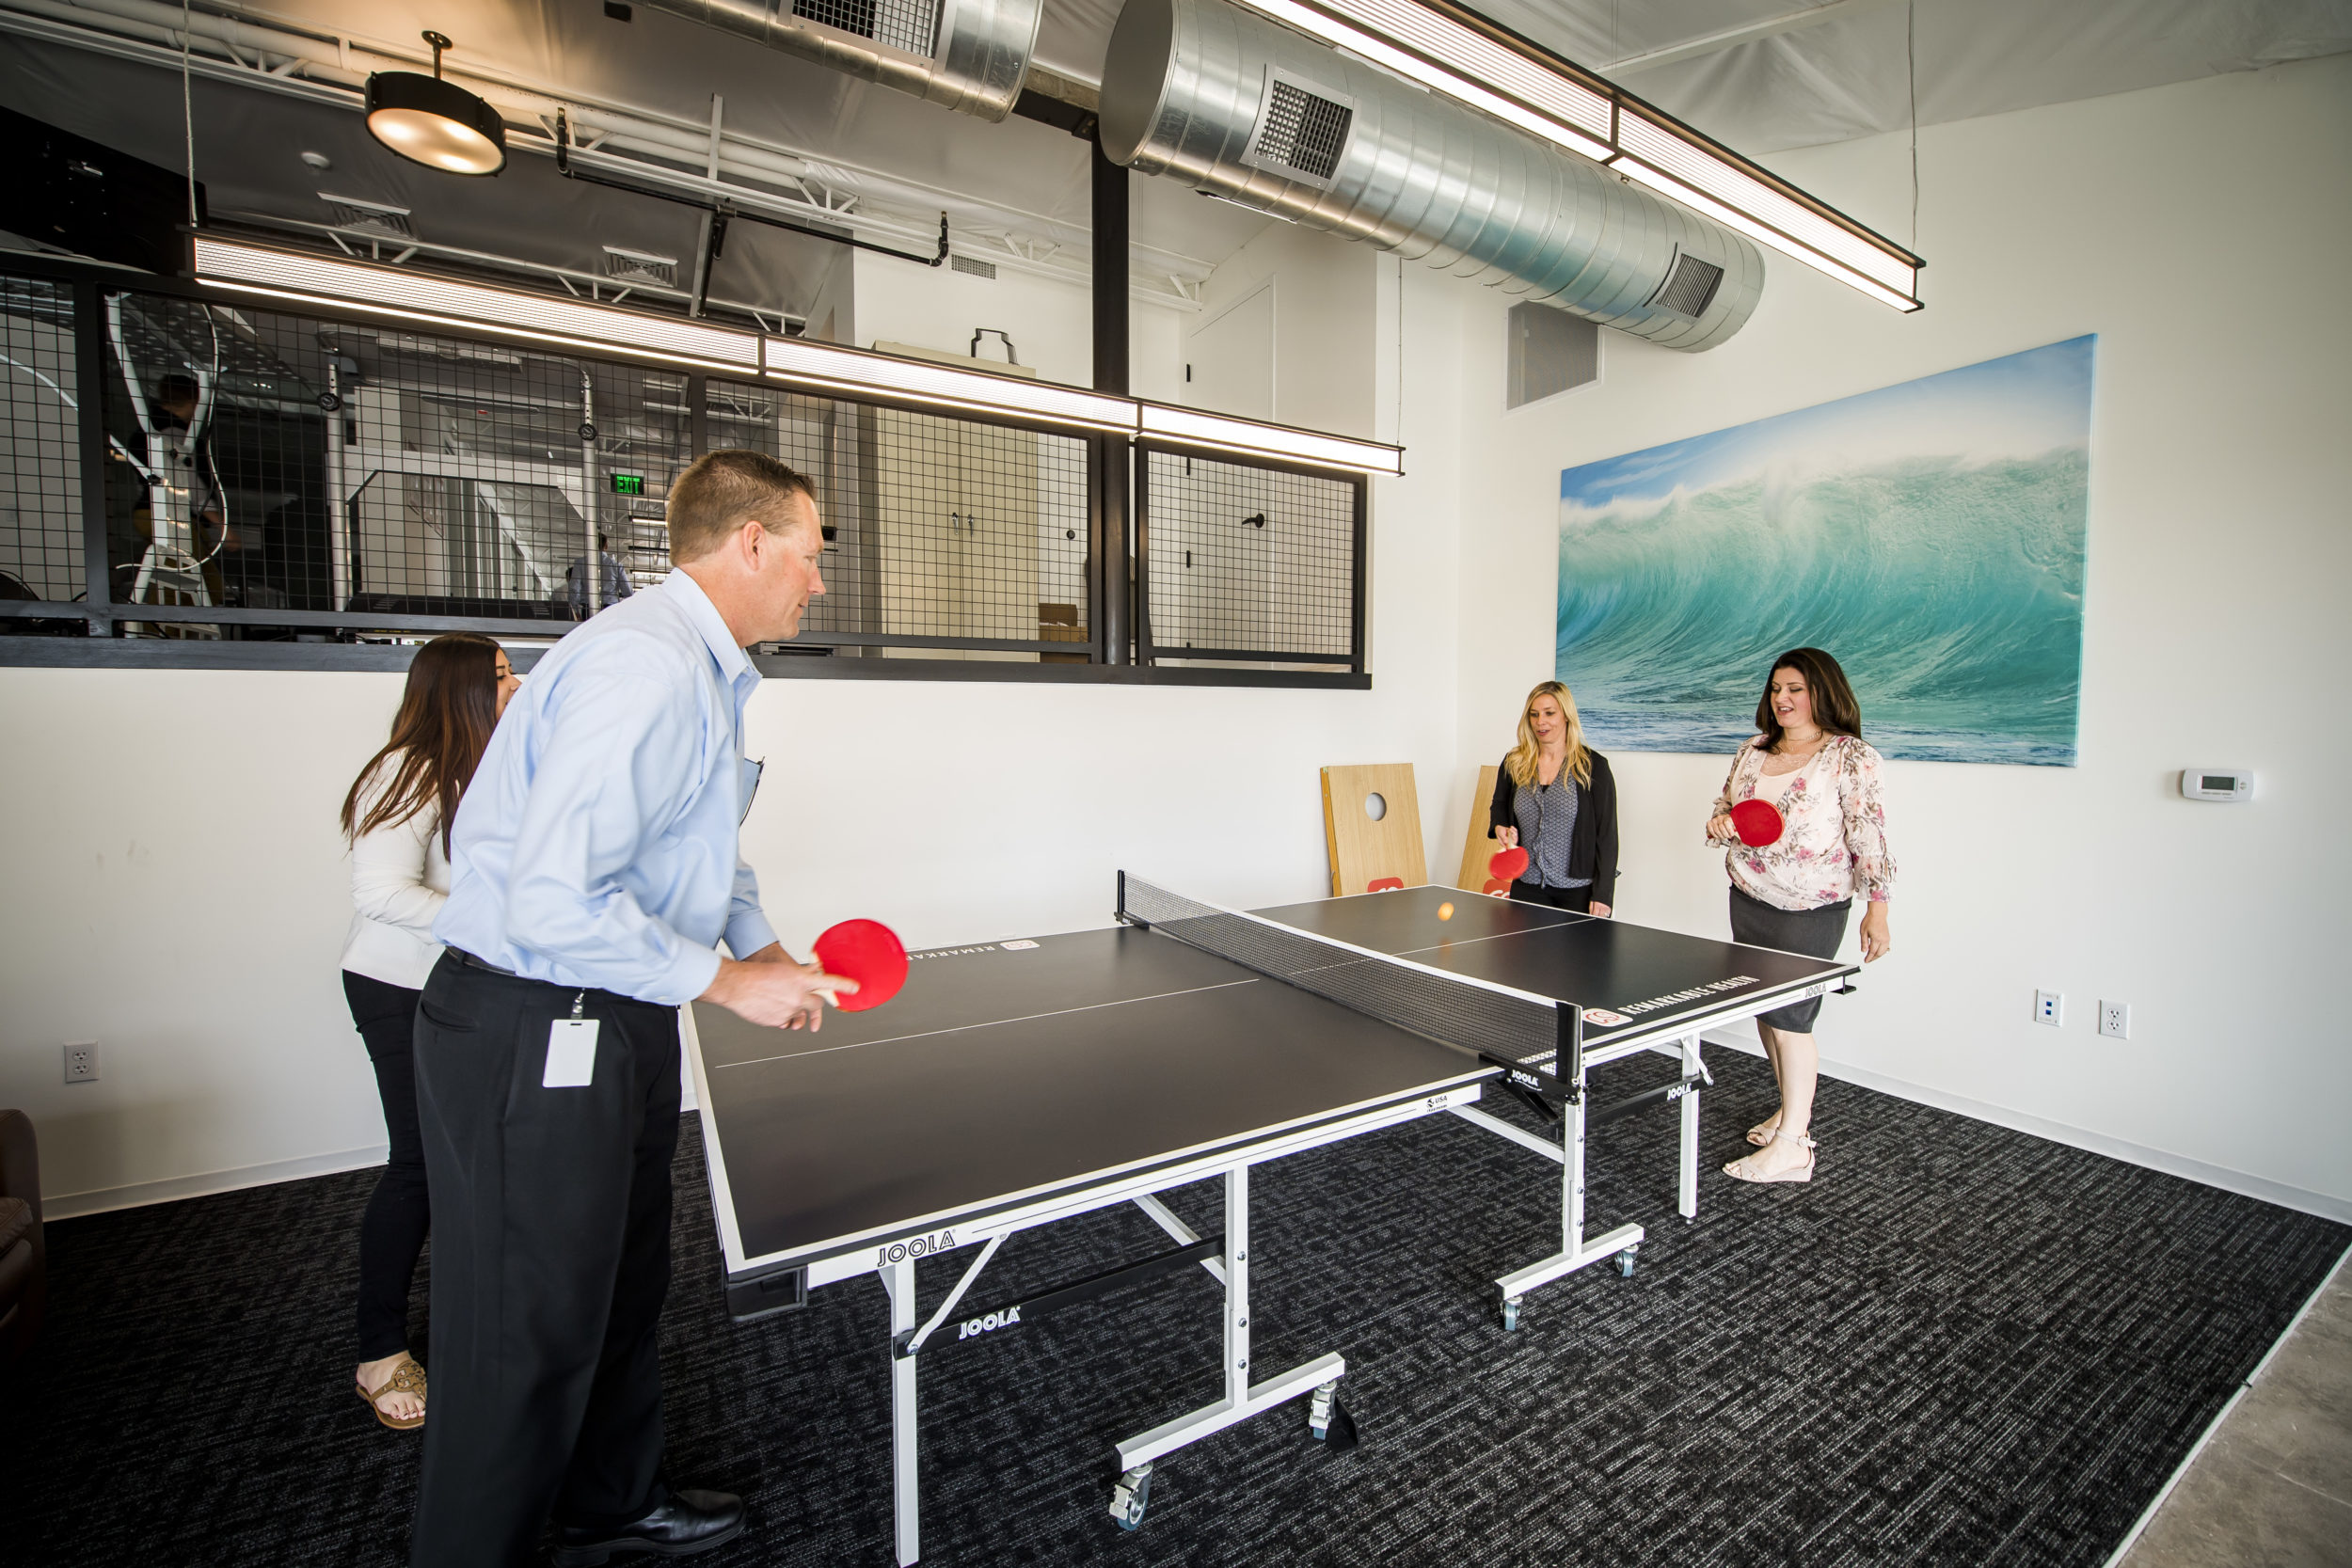 remarkable health employees playing ping pong during break